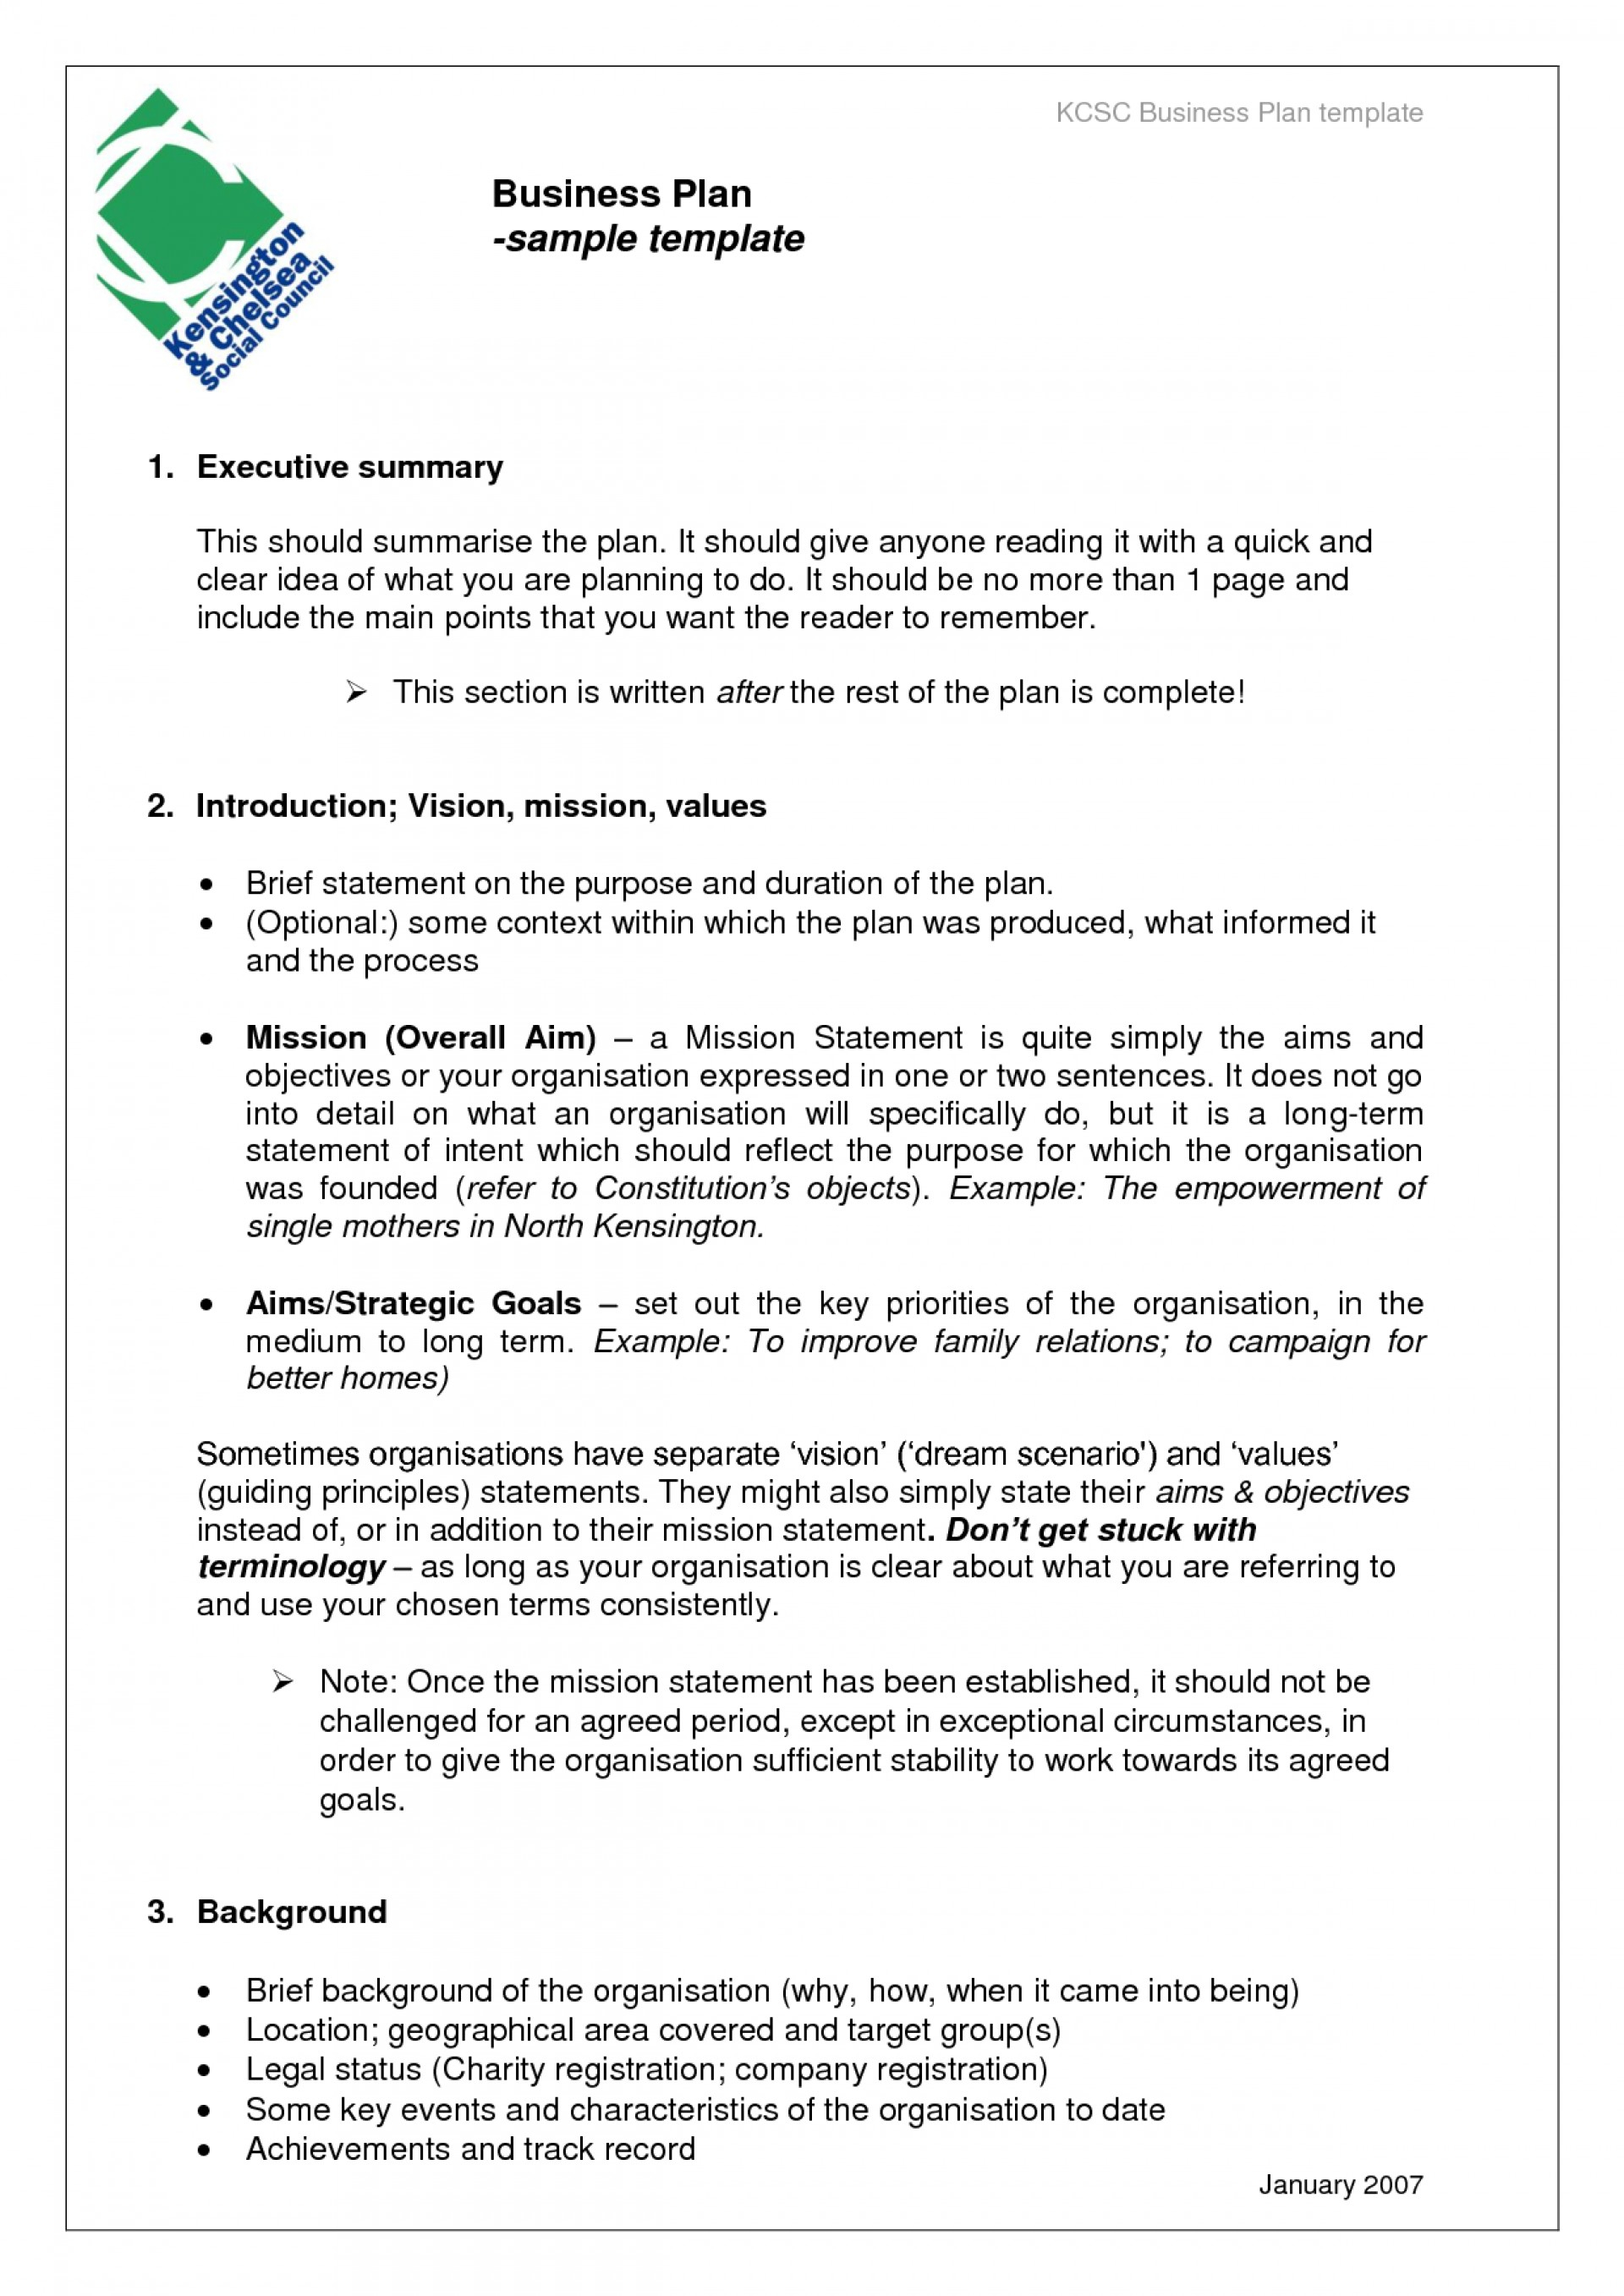 Business Plan Template Law Firm Stunning Templates South Africa Regarding Business Plan Template Law Firm